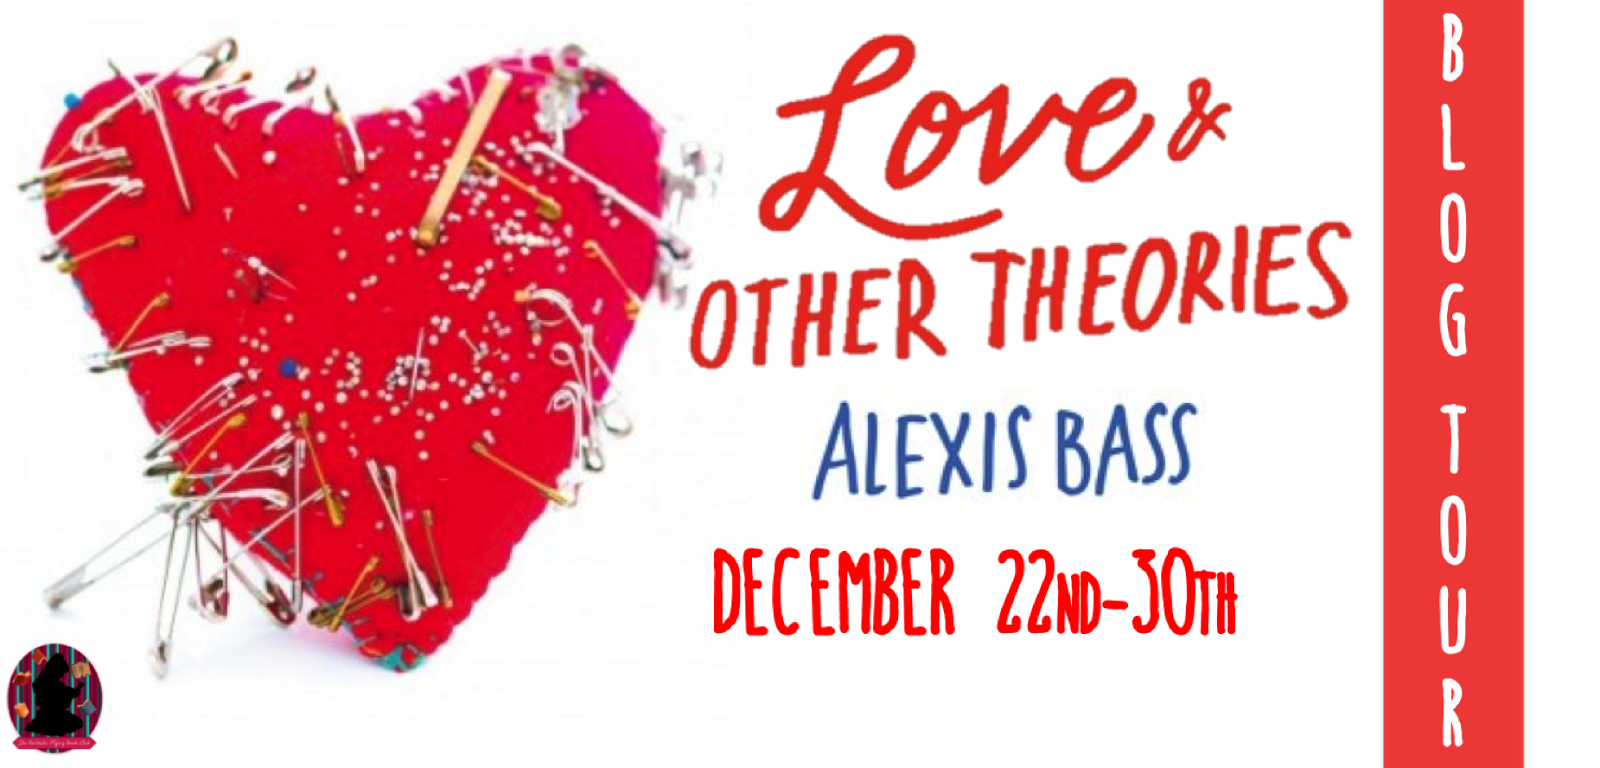 http://theunofficialaddictionbookfanclub.blogspot.com/2014/10/ffbc-blog-tour-love-and-other-theories.html